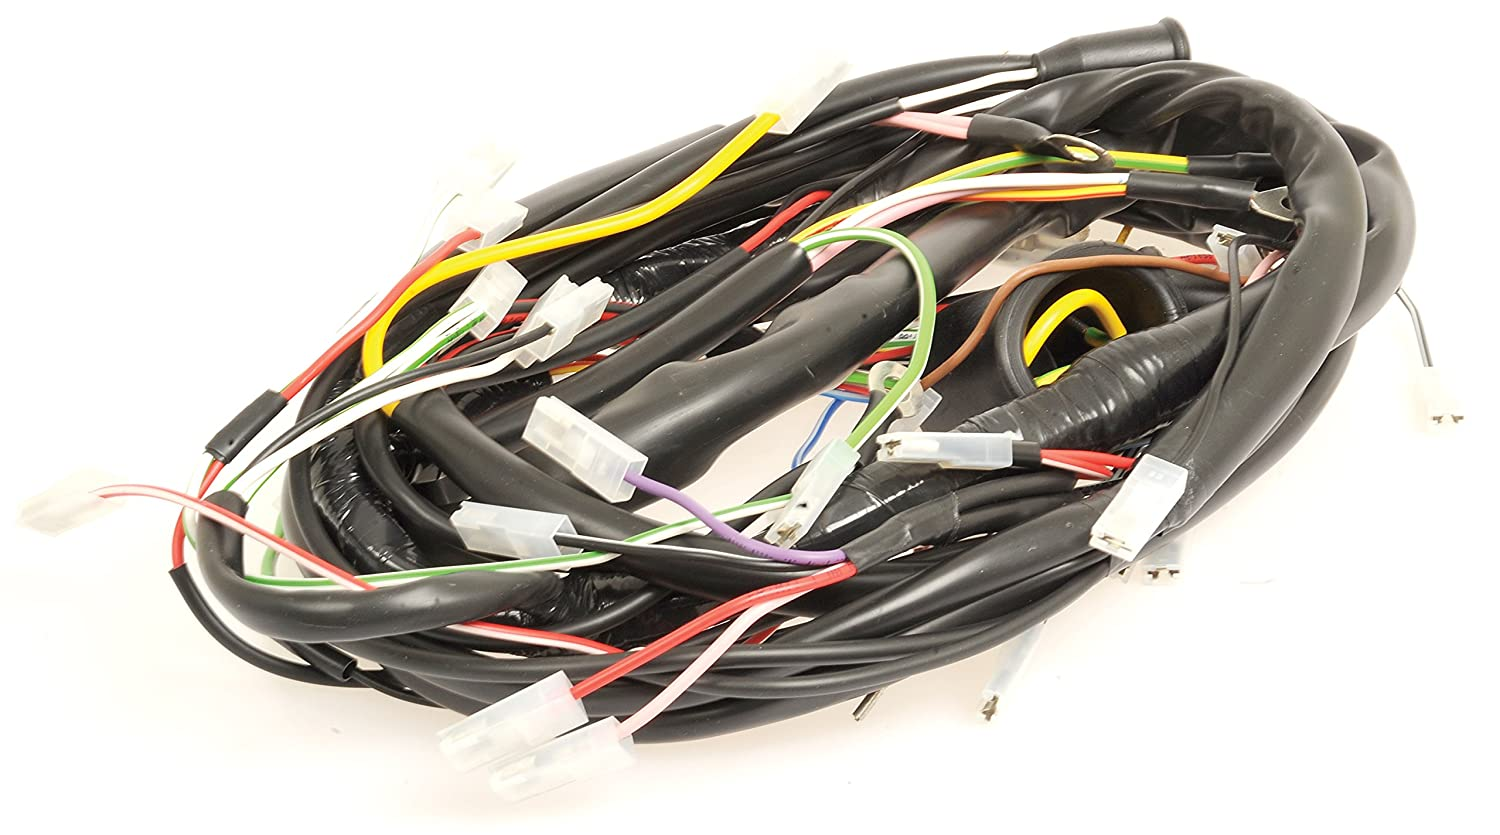 Amazon Allis Chalmers Wiring Harness Main S59182 312902314. Amazon Allis Chalmers Wiring Harness Main S59182 312902314 312905816 5103402 72091825 Industrial Scientific. Wiring. Ih 284 Wiring Harnesses At Scoala.co